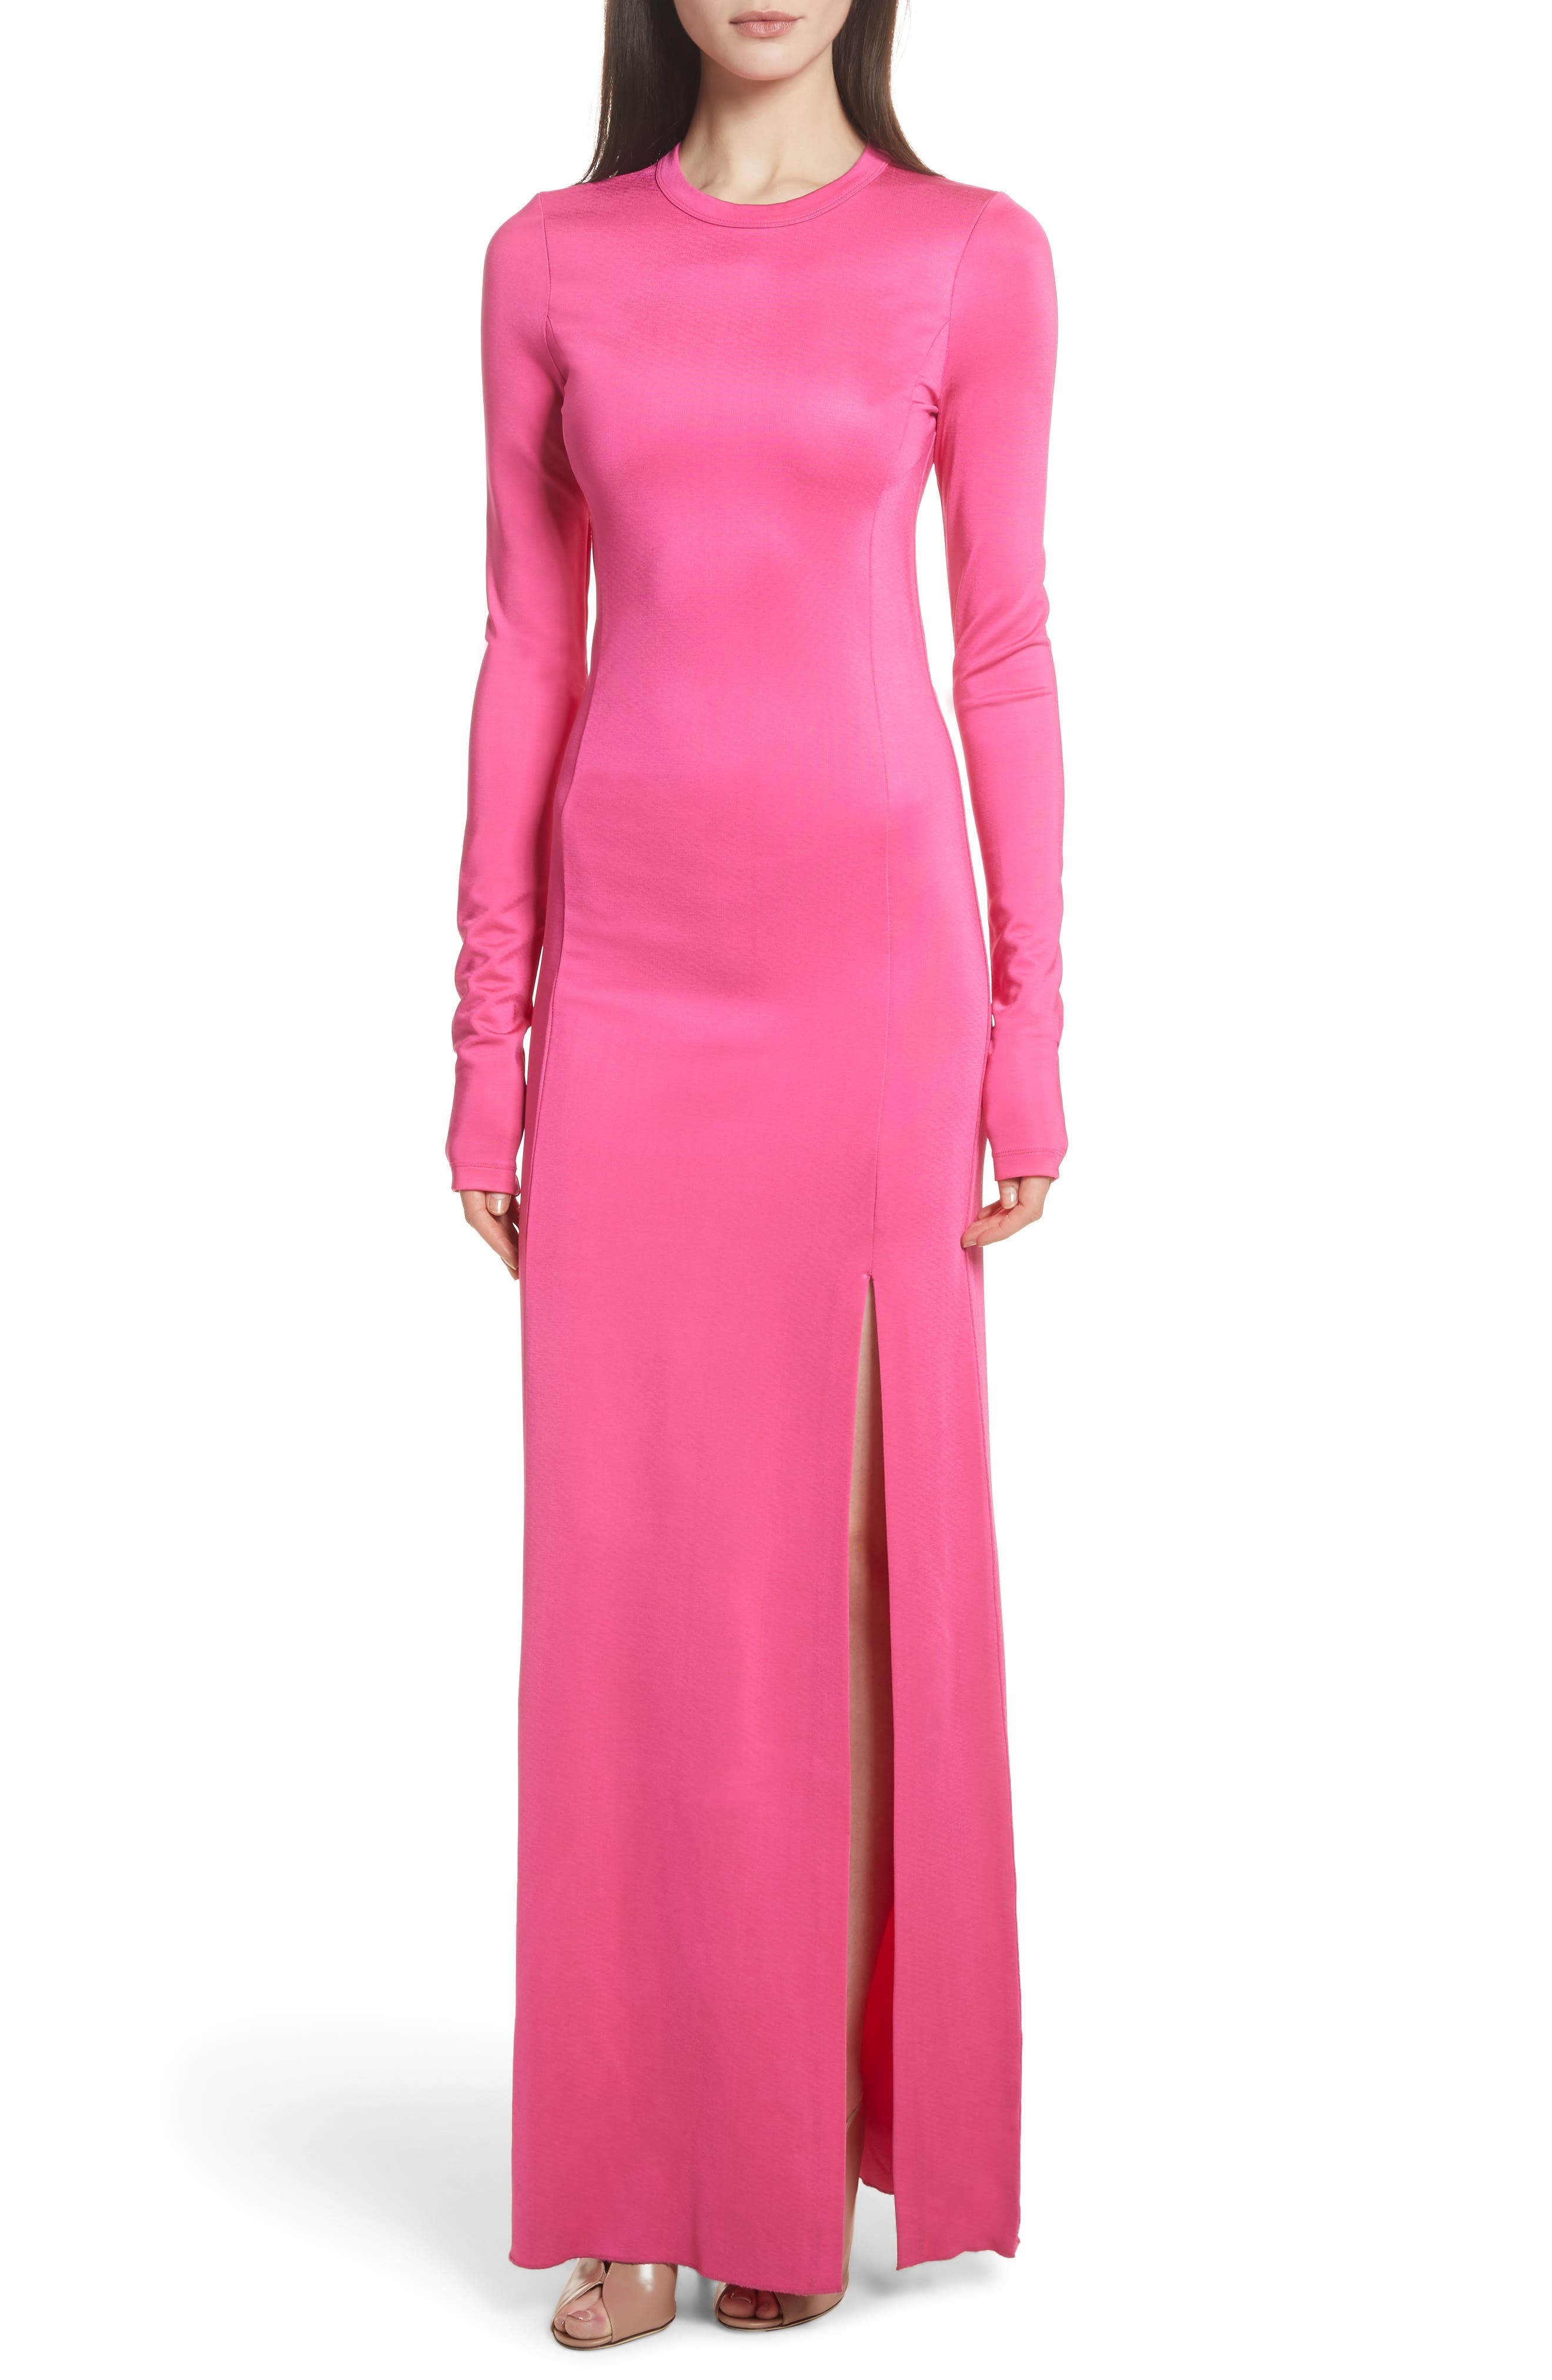 Elizabeth and James Fallon Slit Skirt Jersey Maxi Dress